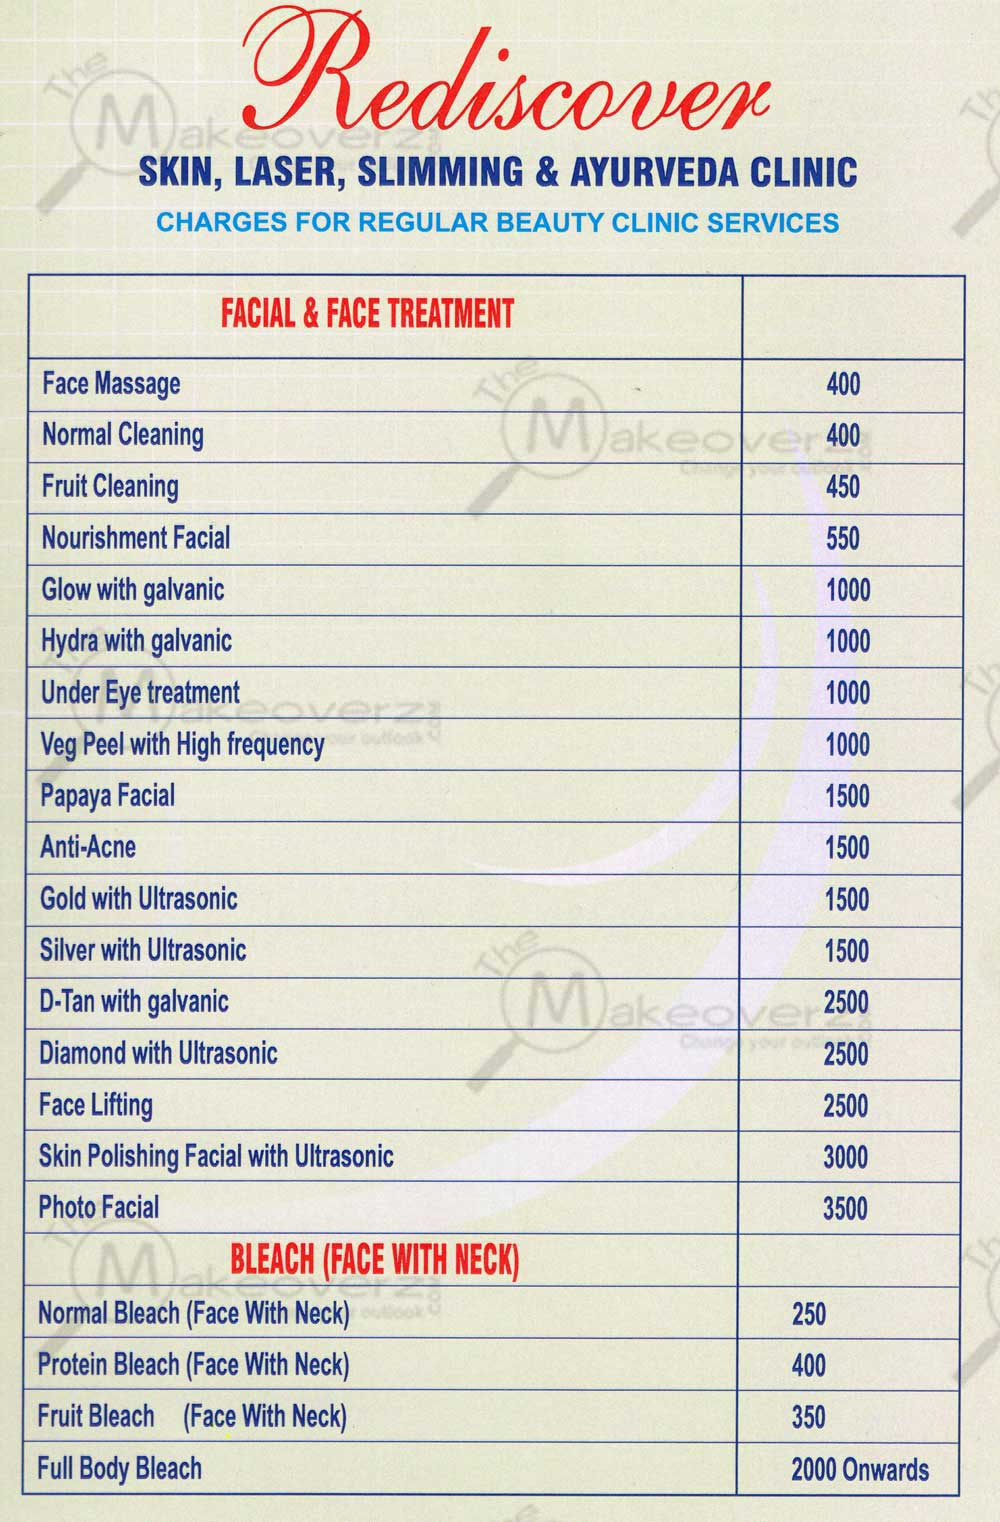 rediscover salon rate list